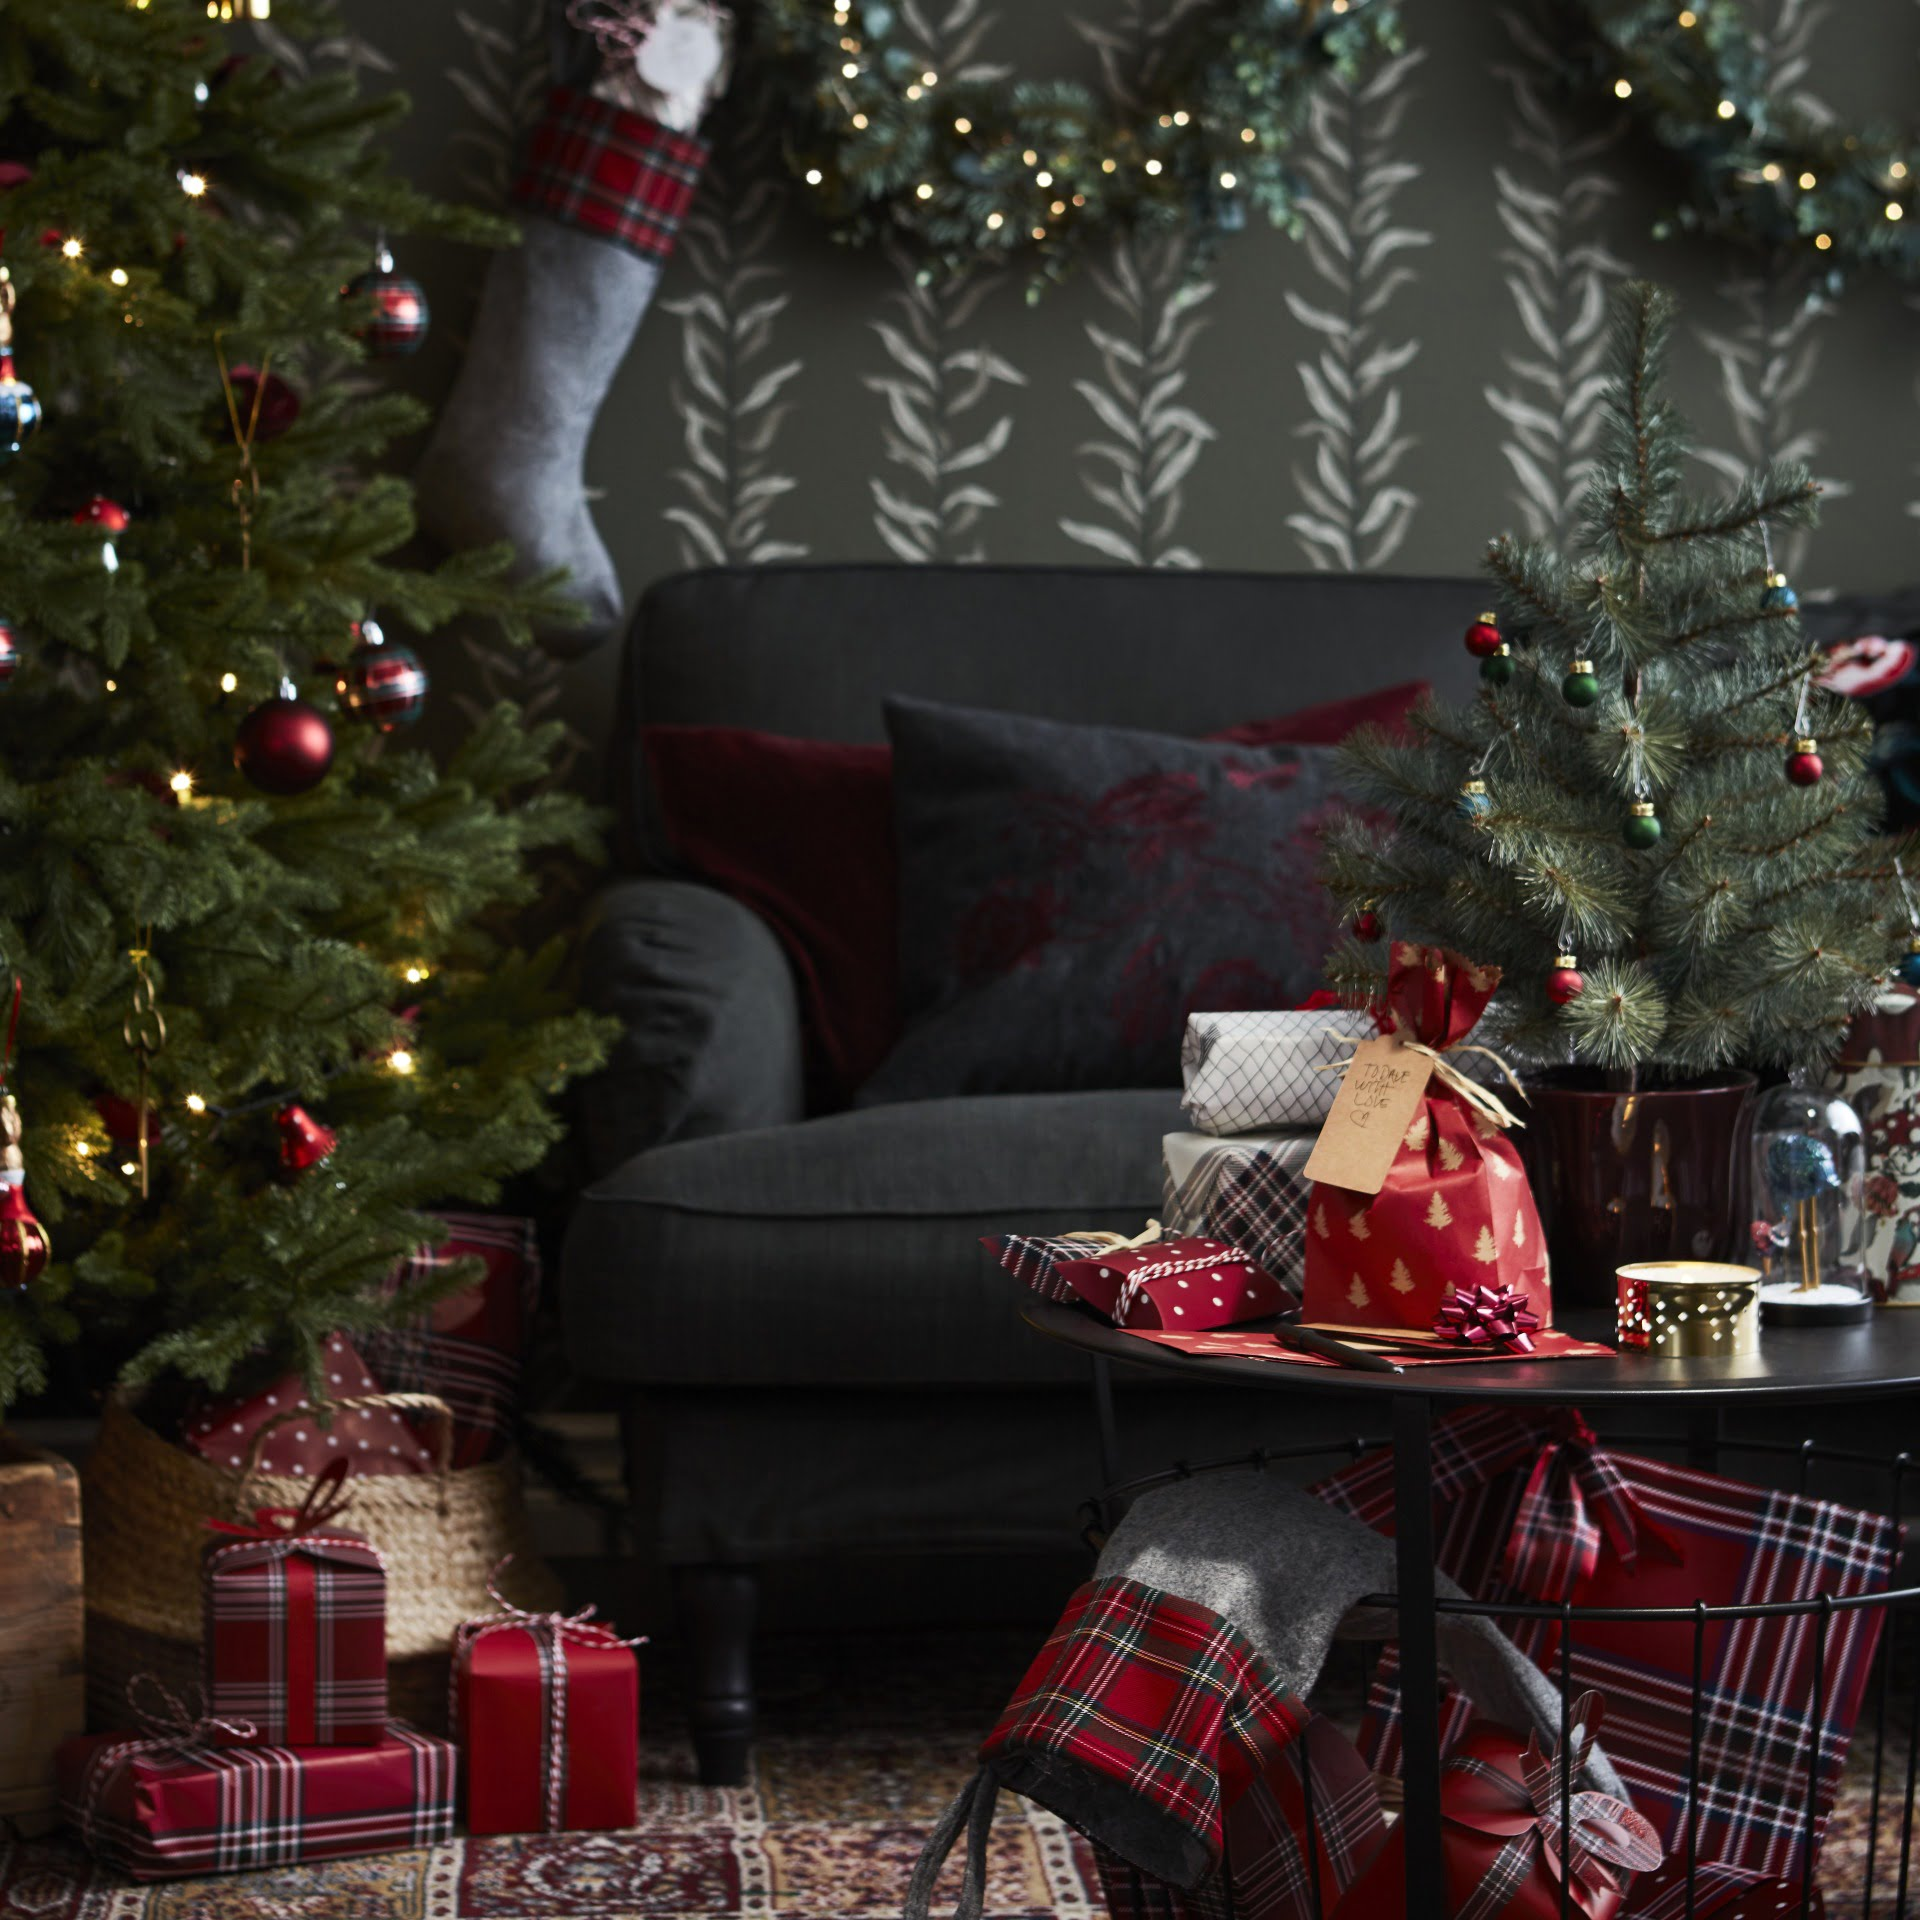 Four handy tips to help you have a hassle free Christmas this year by Interior Stylist Maxine Brady at www.welovehomeblog.com